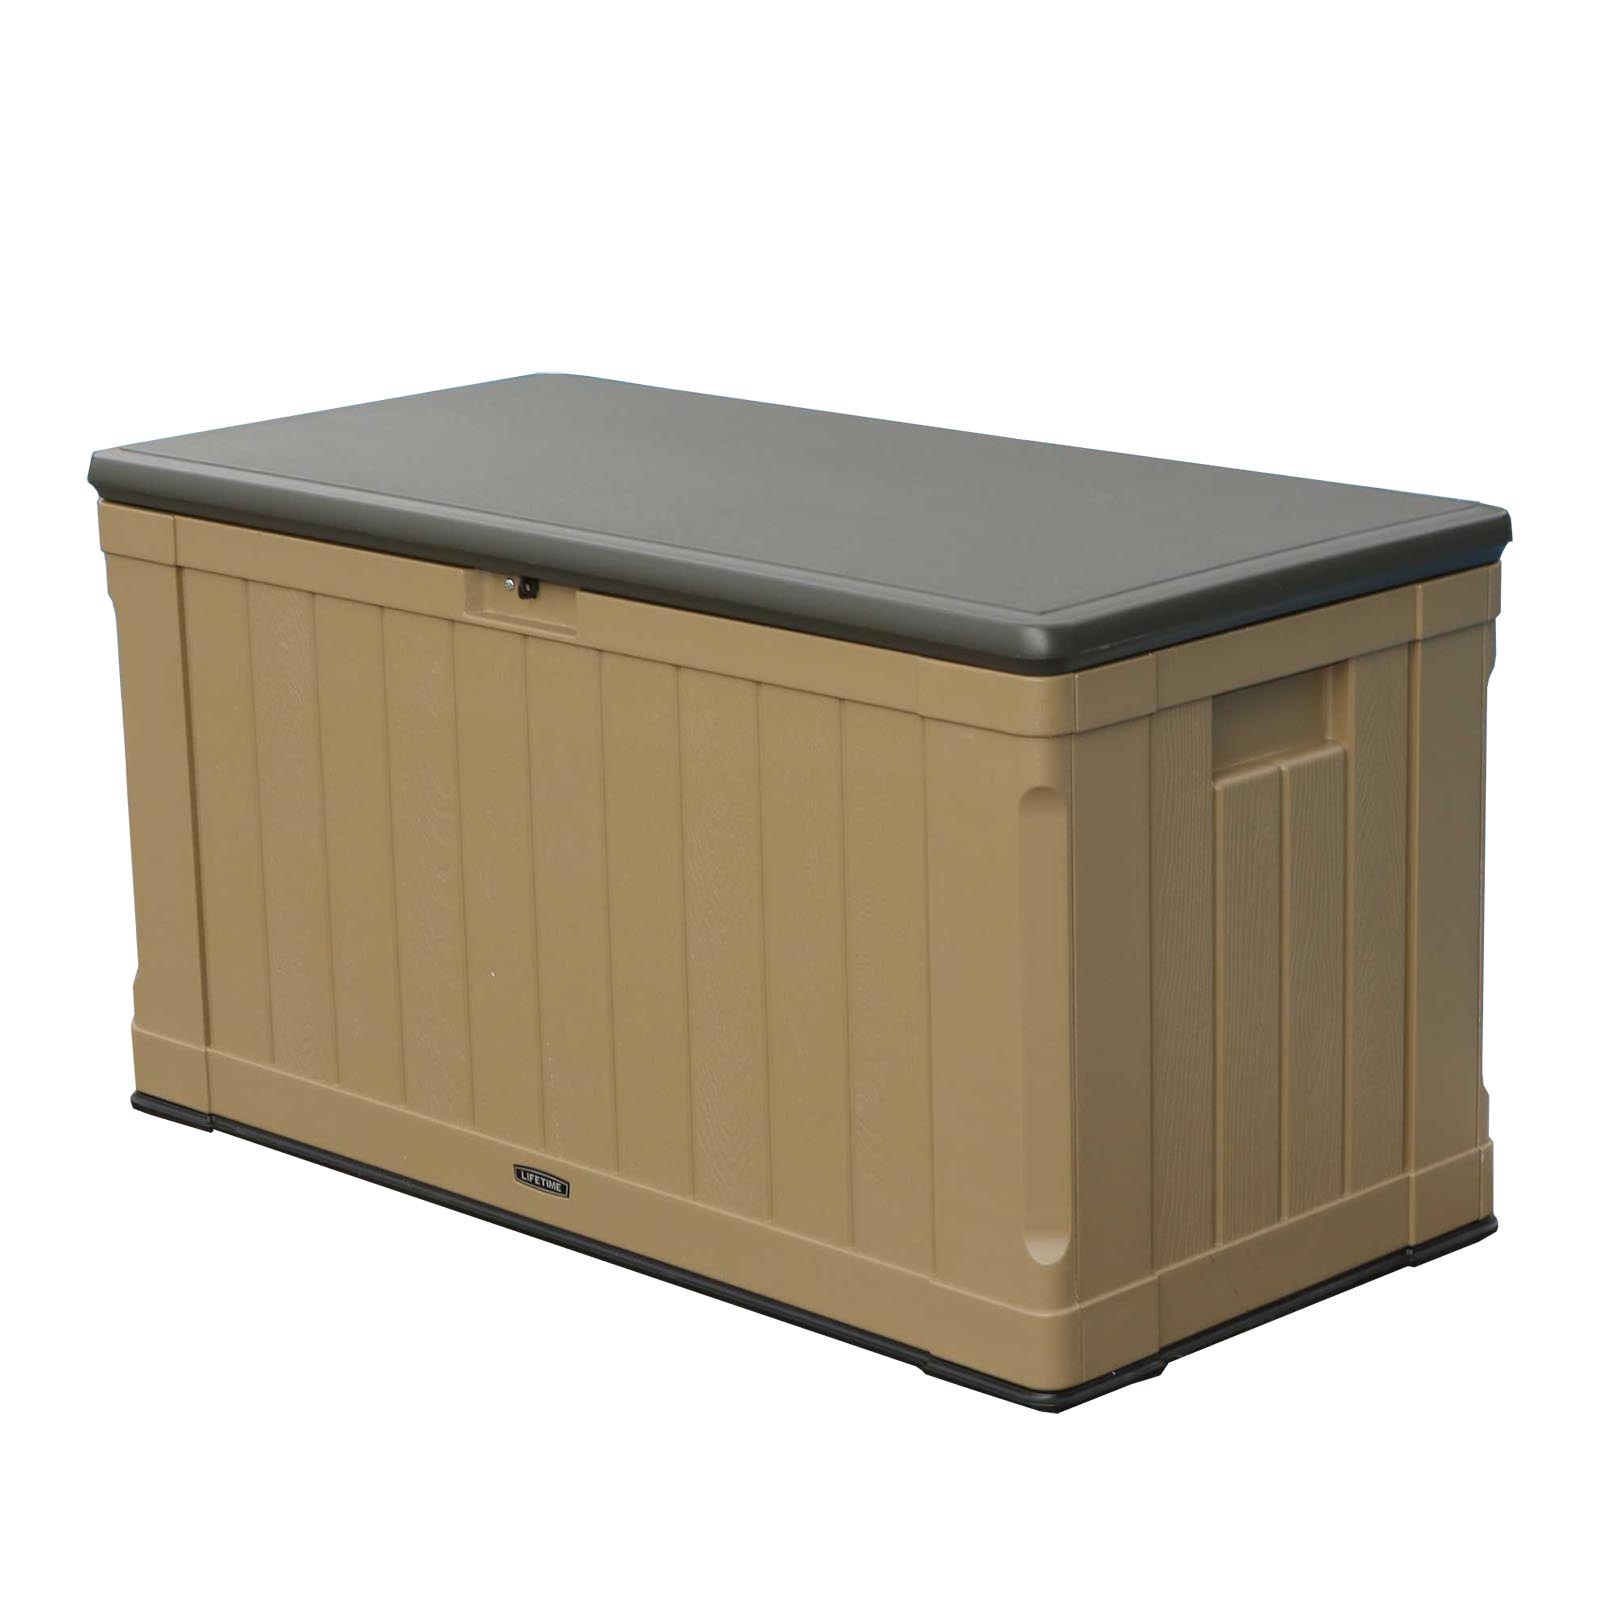 Lifetime 116 Gallon Outdoor Organizer Storage Pool Patio